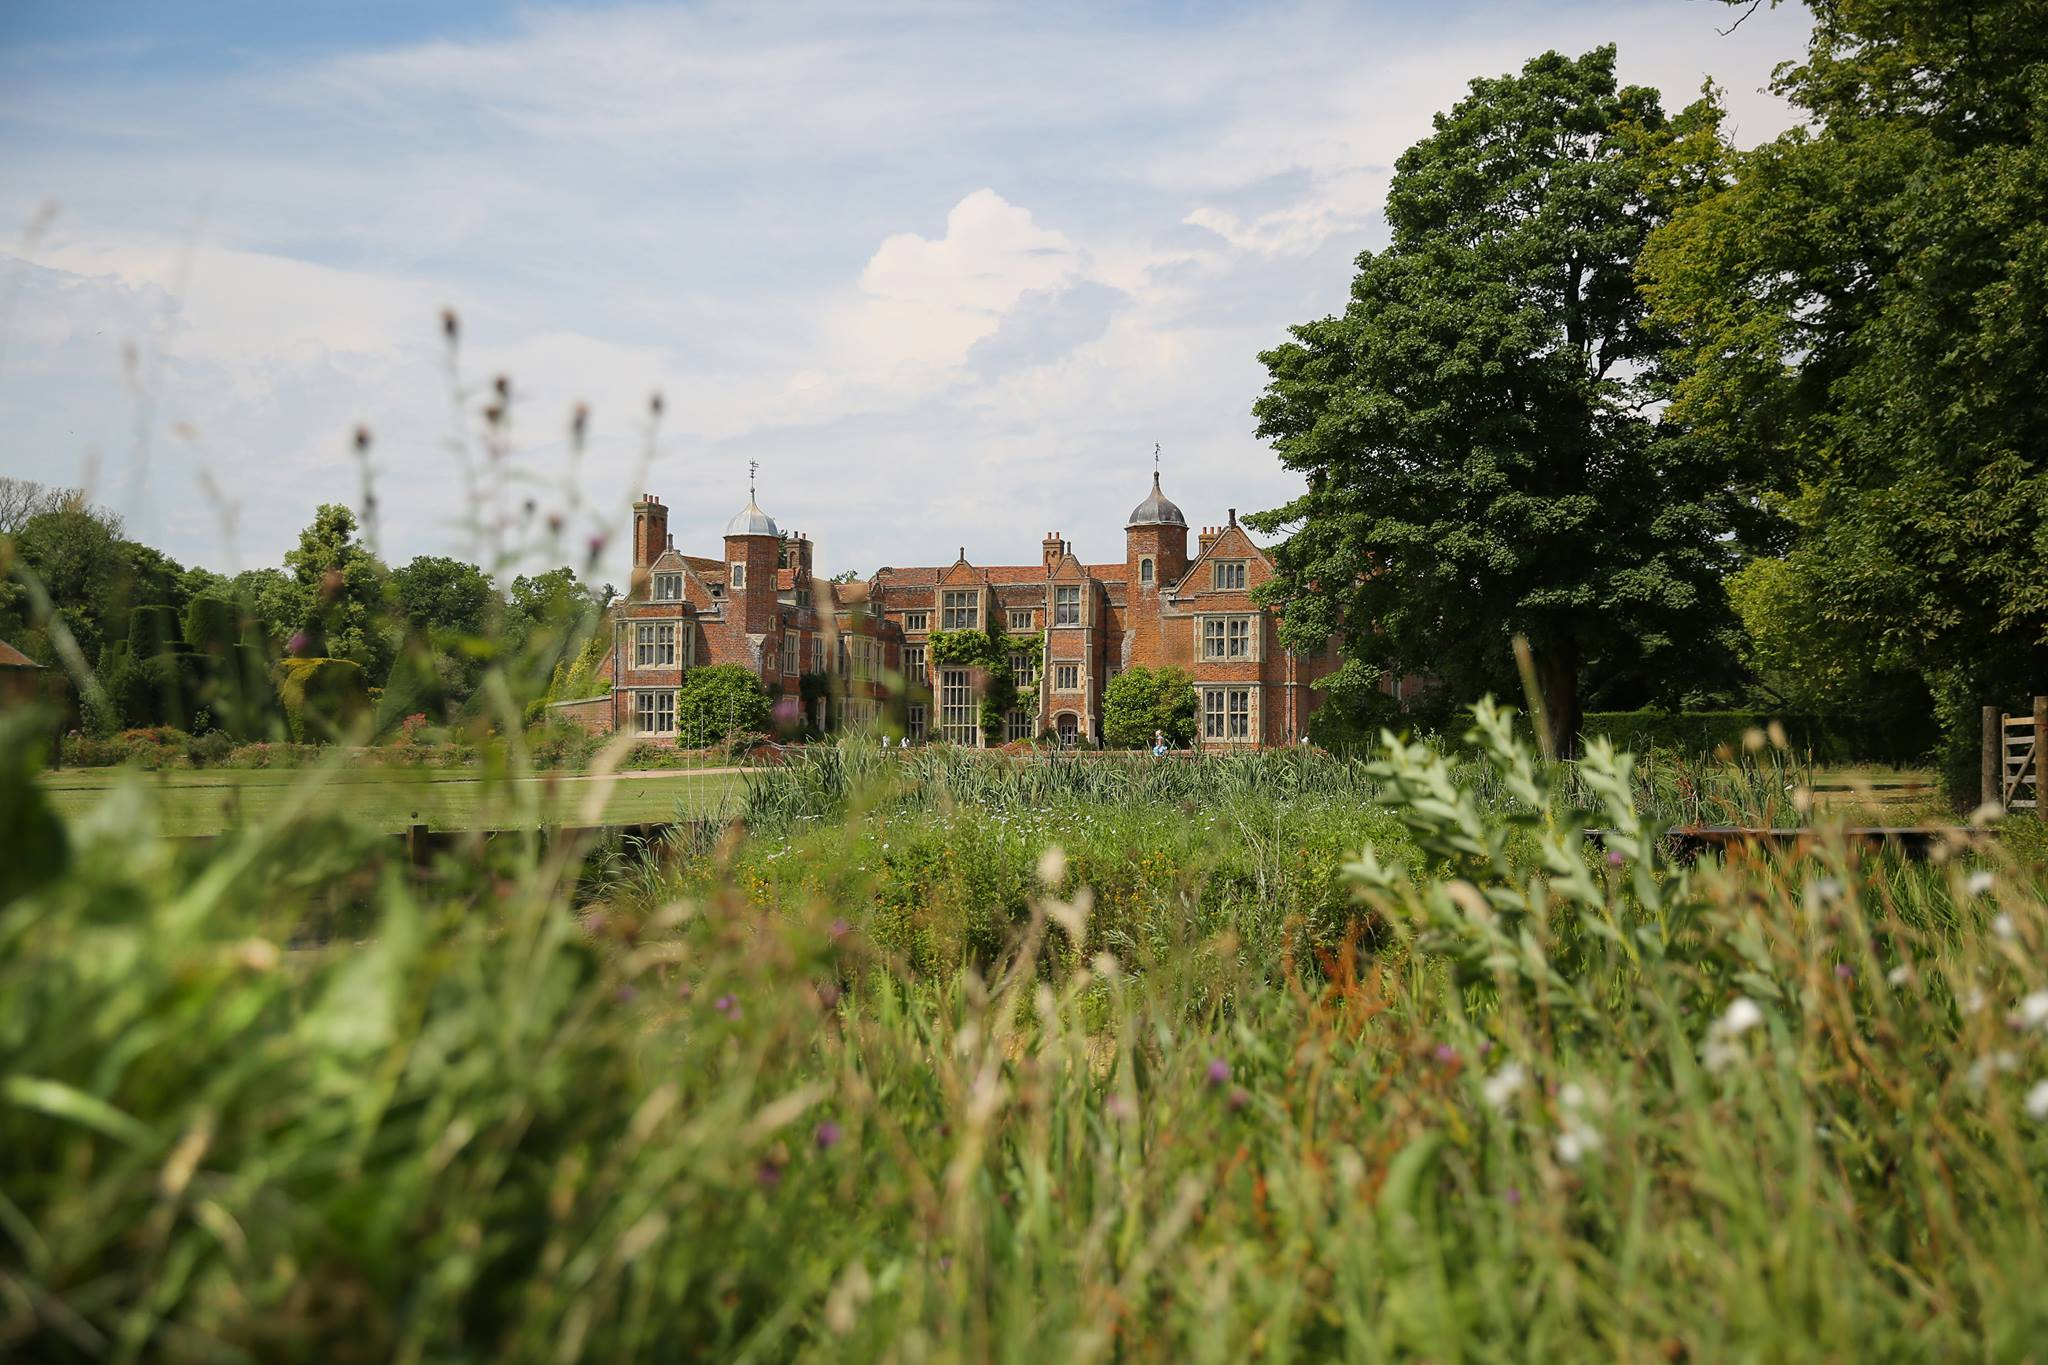 Kentwell Hall Tudor House in Suffolk